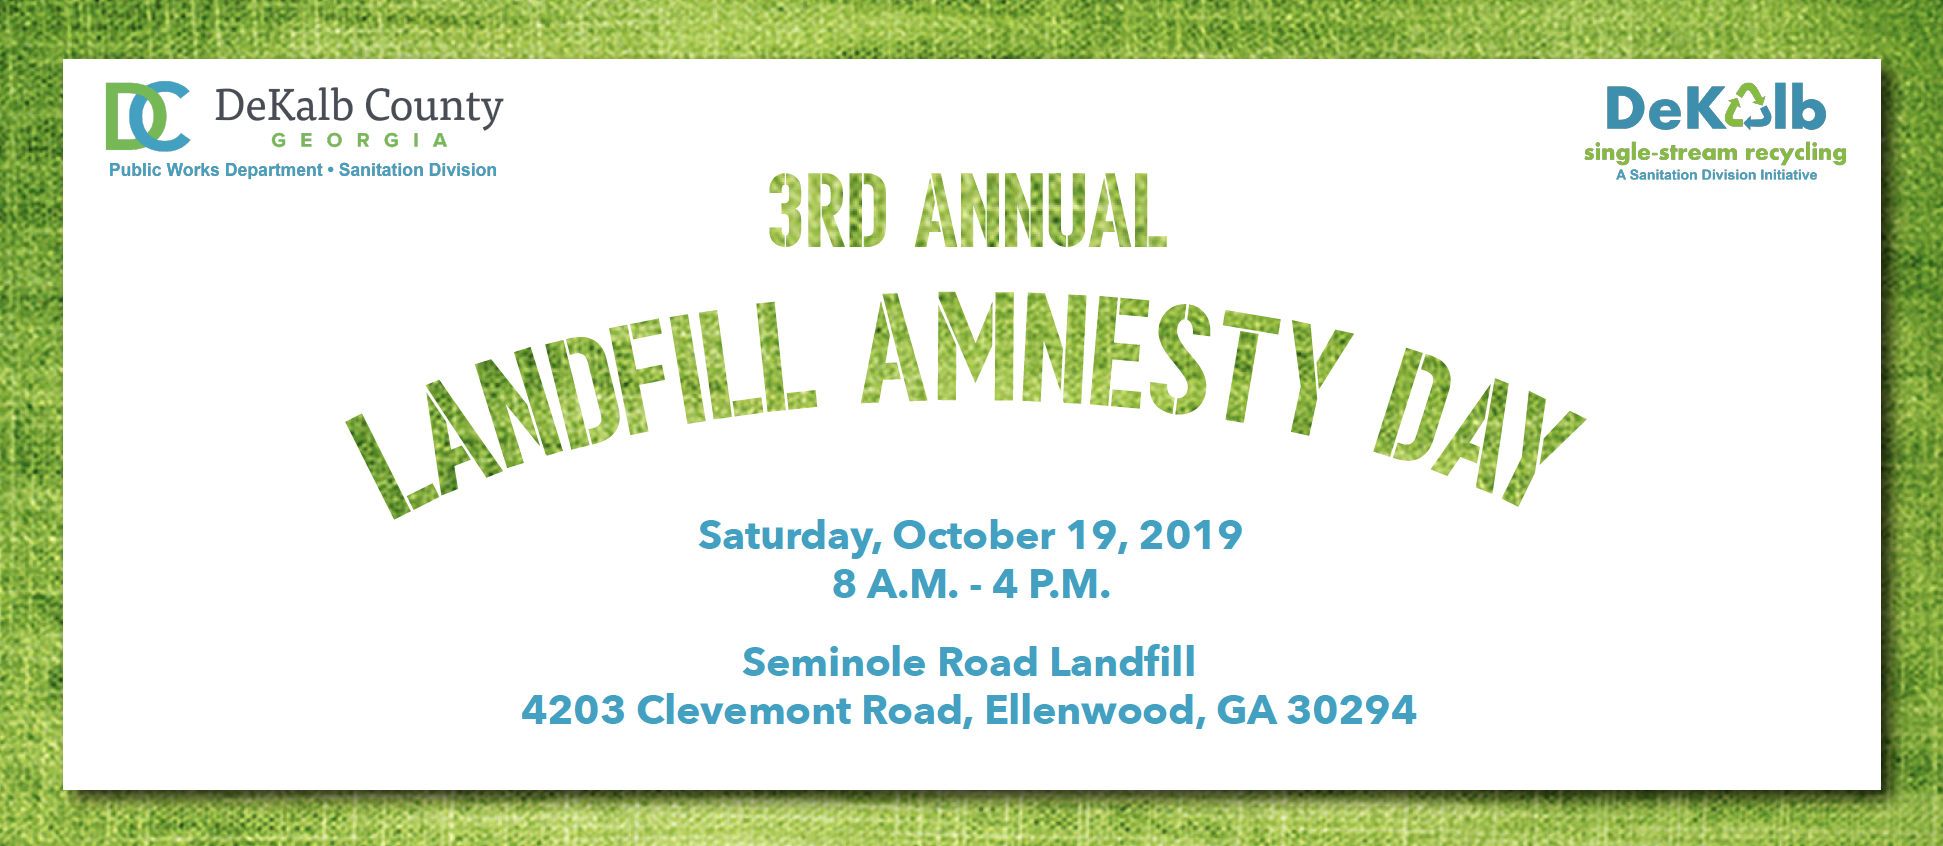 https://www.dekalbcountyga.gov/sites/default/files/2019-09/Landfill%20Amnesty%20Day%202019%20-%20Sliding%20Graphic.jpg